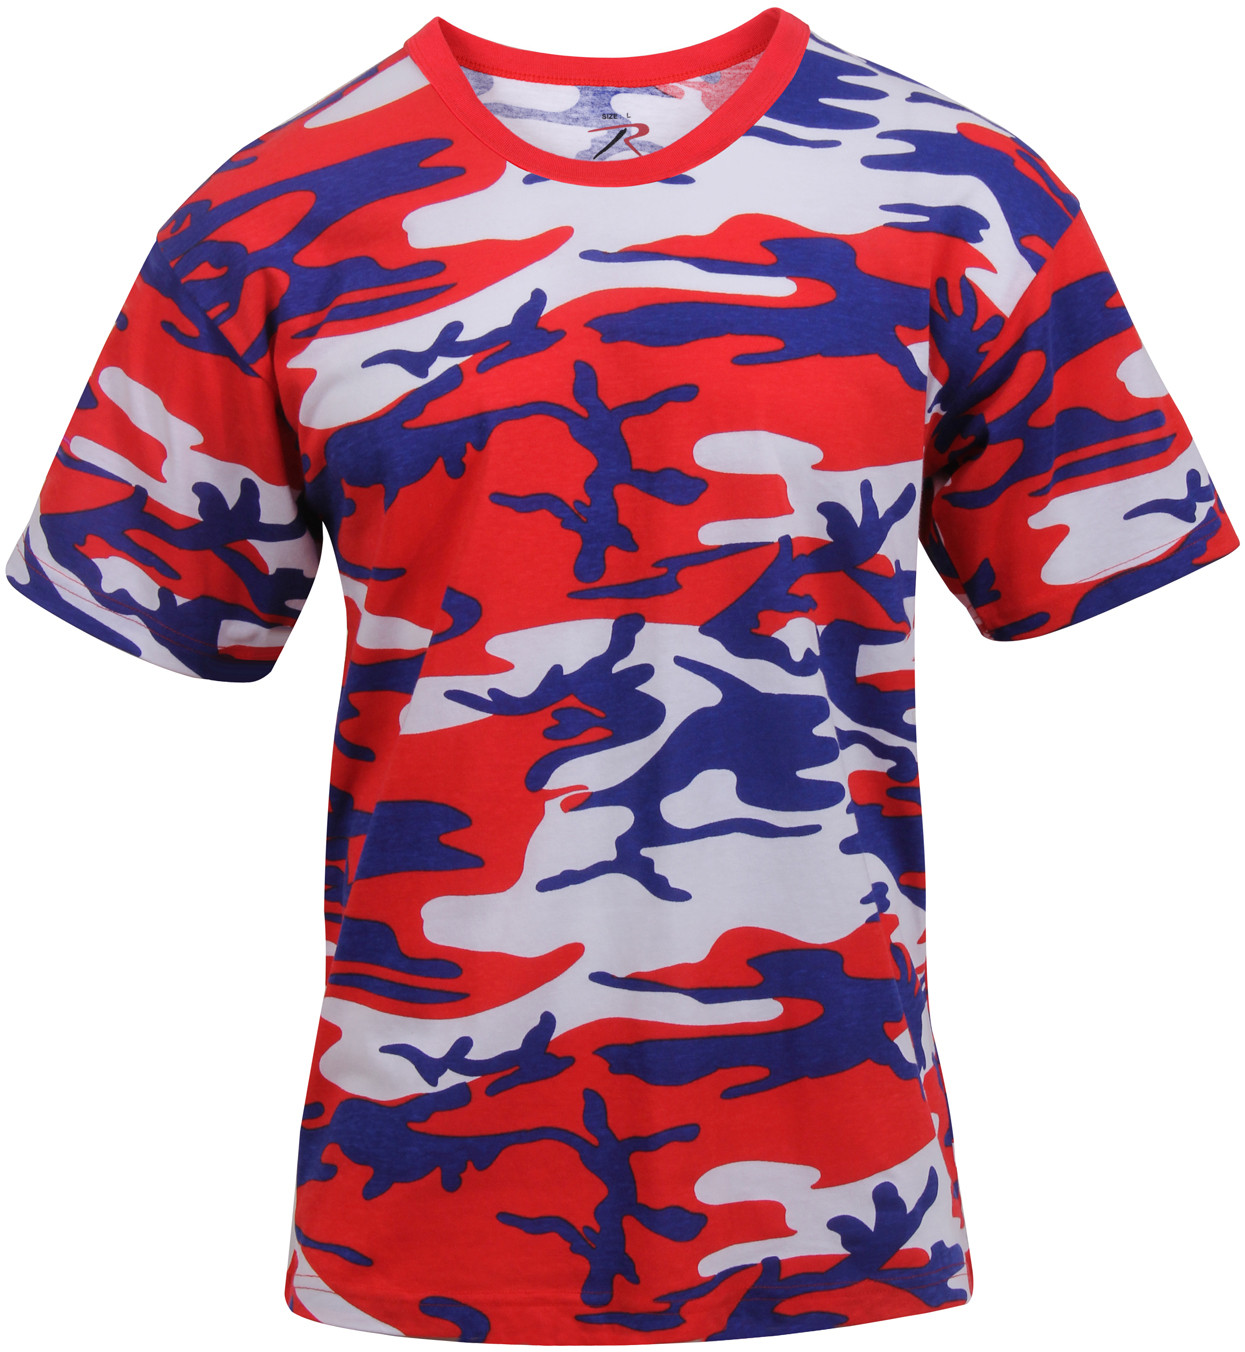 Red White Blue Camouflage Military Short Sleeve T Shirt